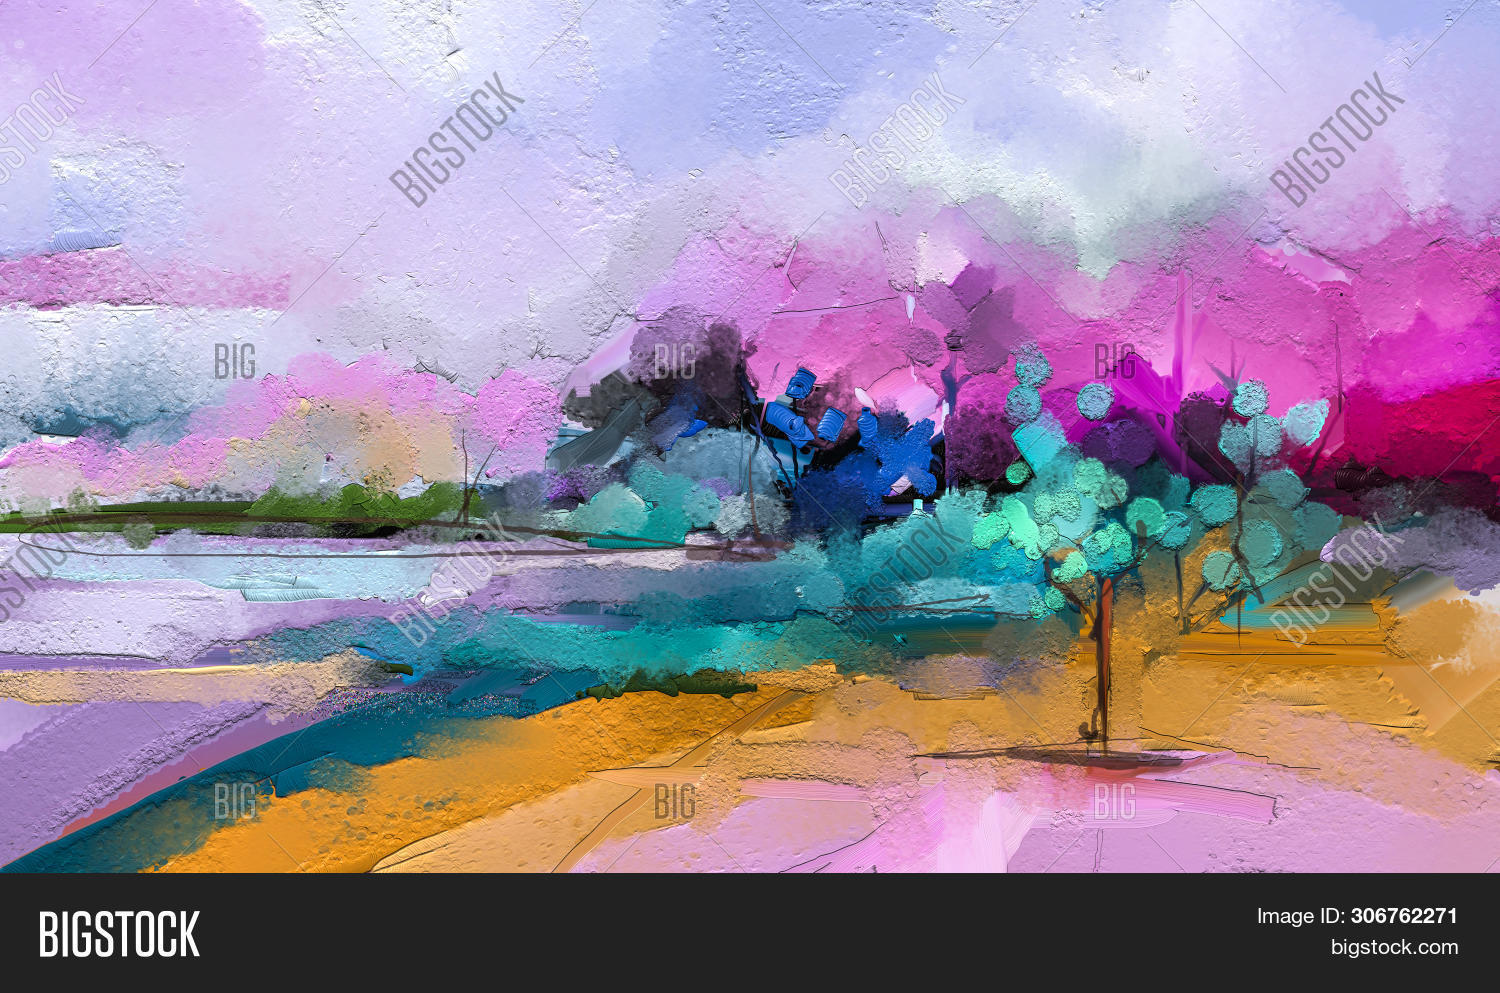 abstract,acrylic,art,artist,artistic,artwork,backdrop,background,blue,bright,brush,canvas,color,colorful,contemporary,creative,decoration,decorative,design,drawing,element,green,grunge,hand,illustration,landscape,light,media,modern,nature,oil,paint,painted,painter,painting,palette,paper,picture,semi,sky,stroke,summer,texture,textured,vibrant,vivid,wall,wallpaper,white,yellow